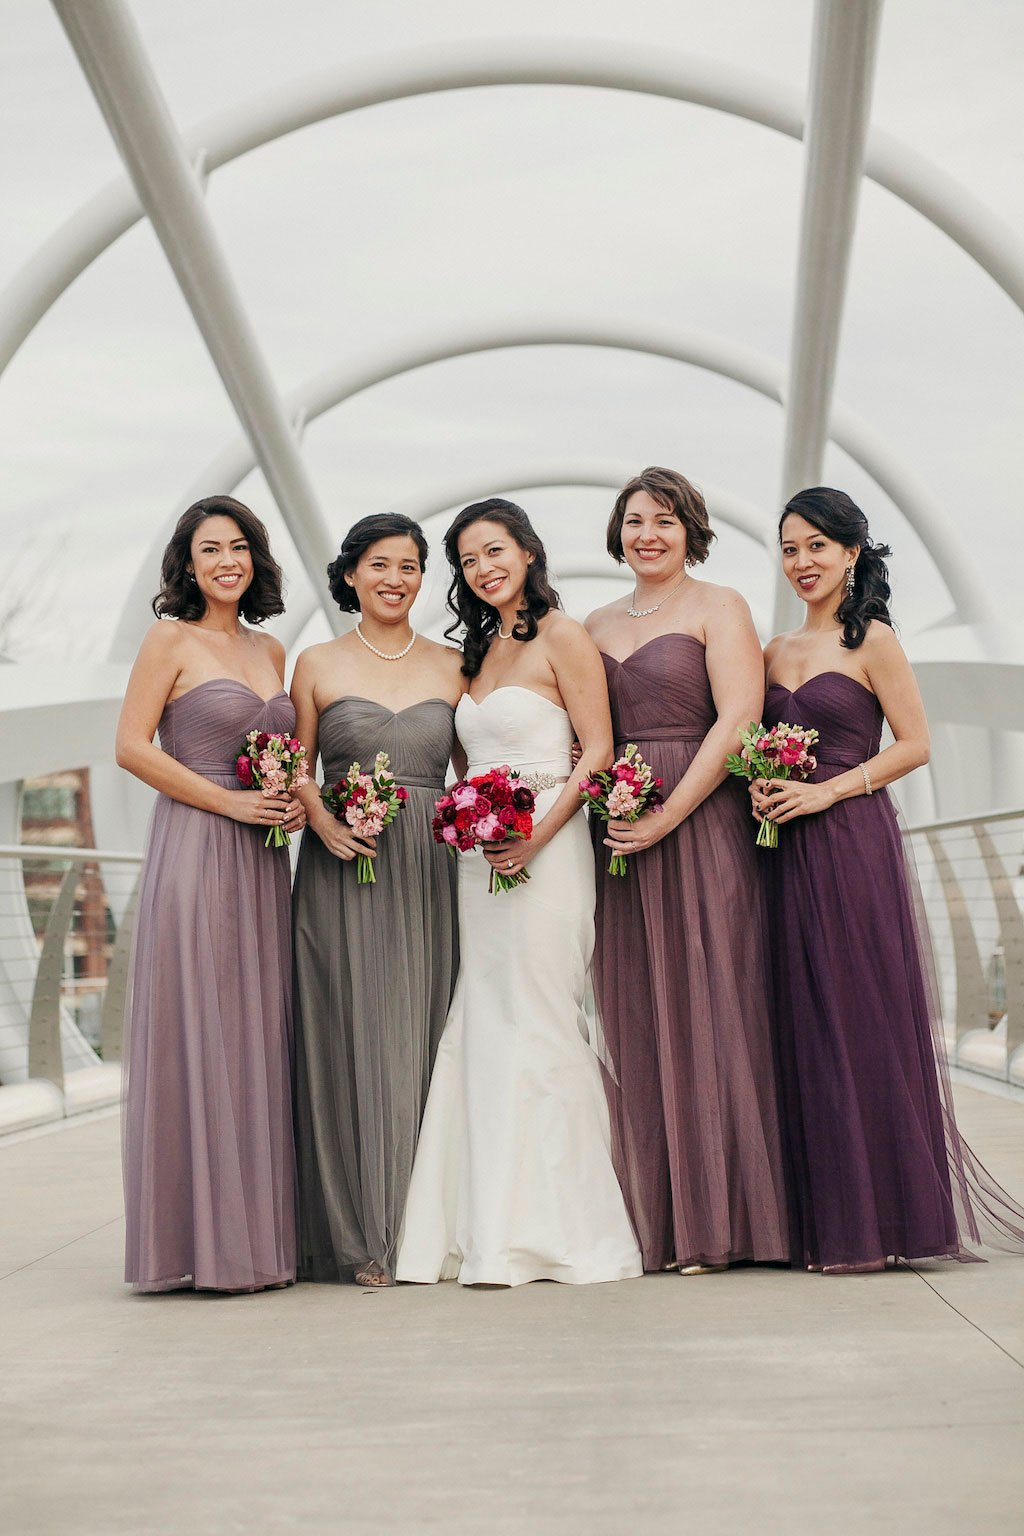 9-2-16-boilmaker-building-yards-park-red-purple-wedding-11